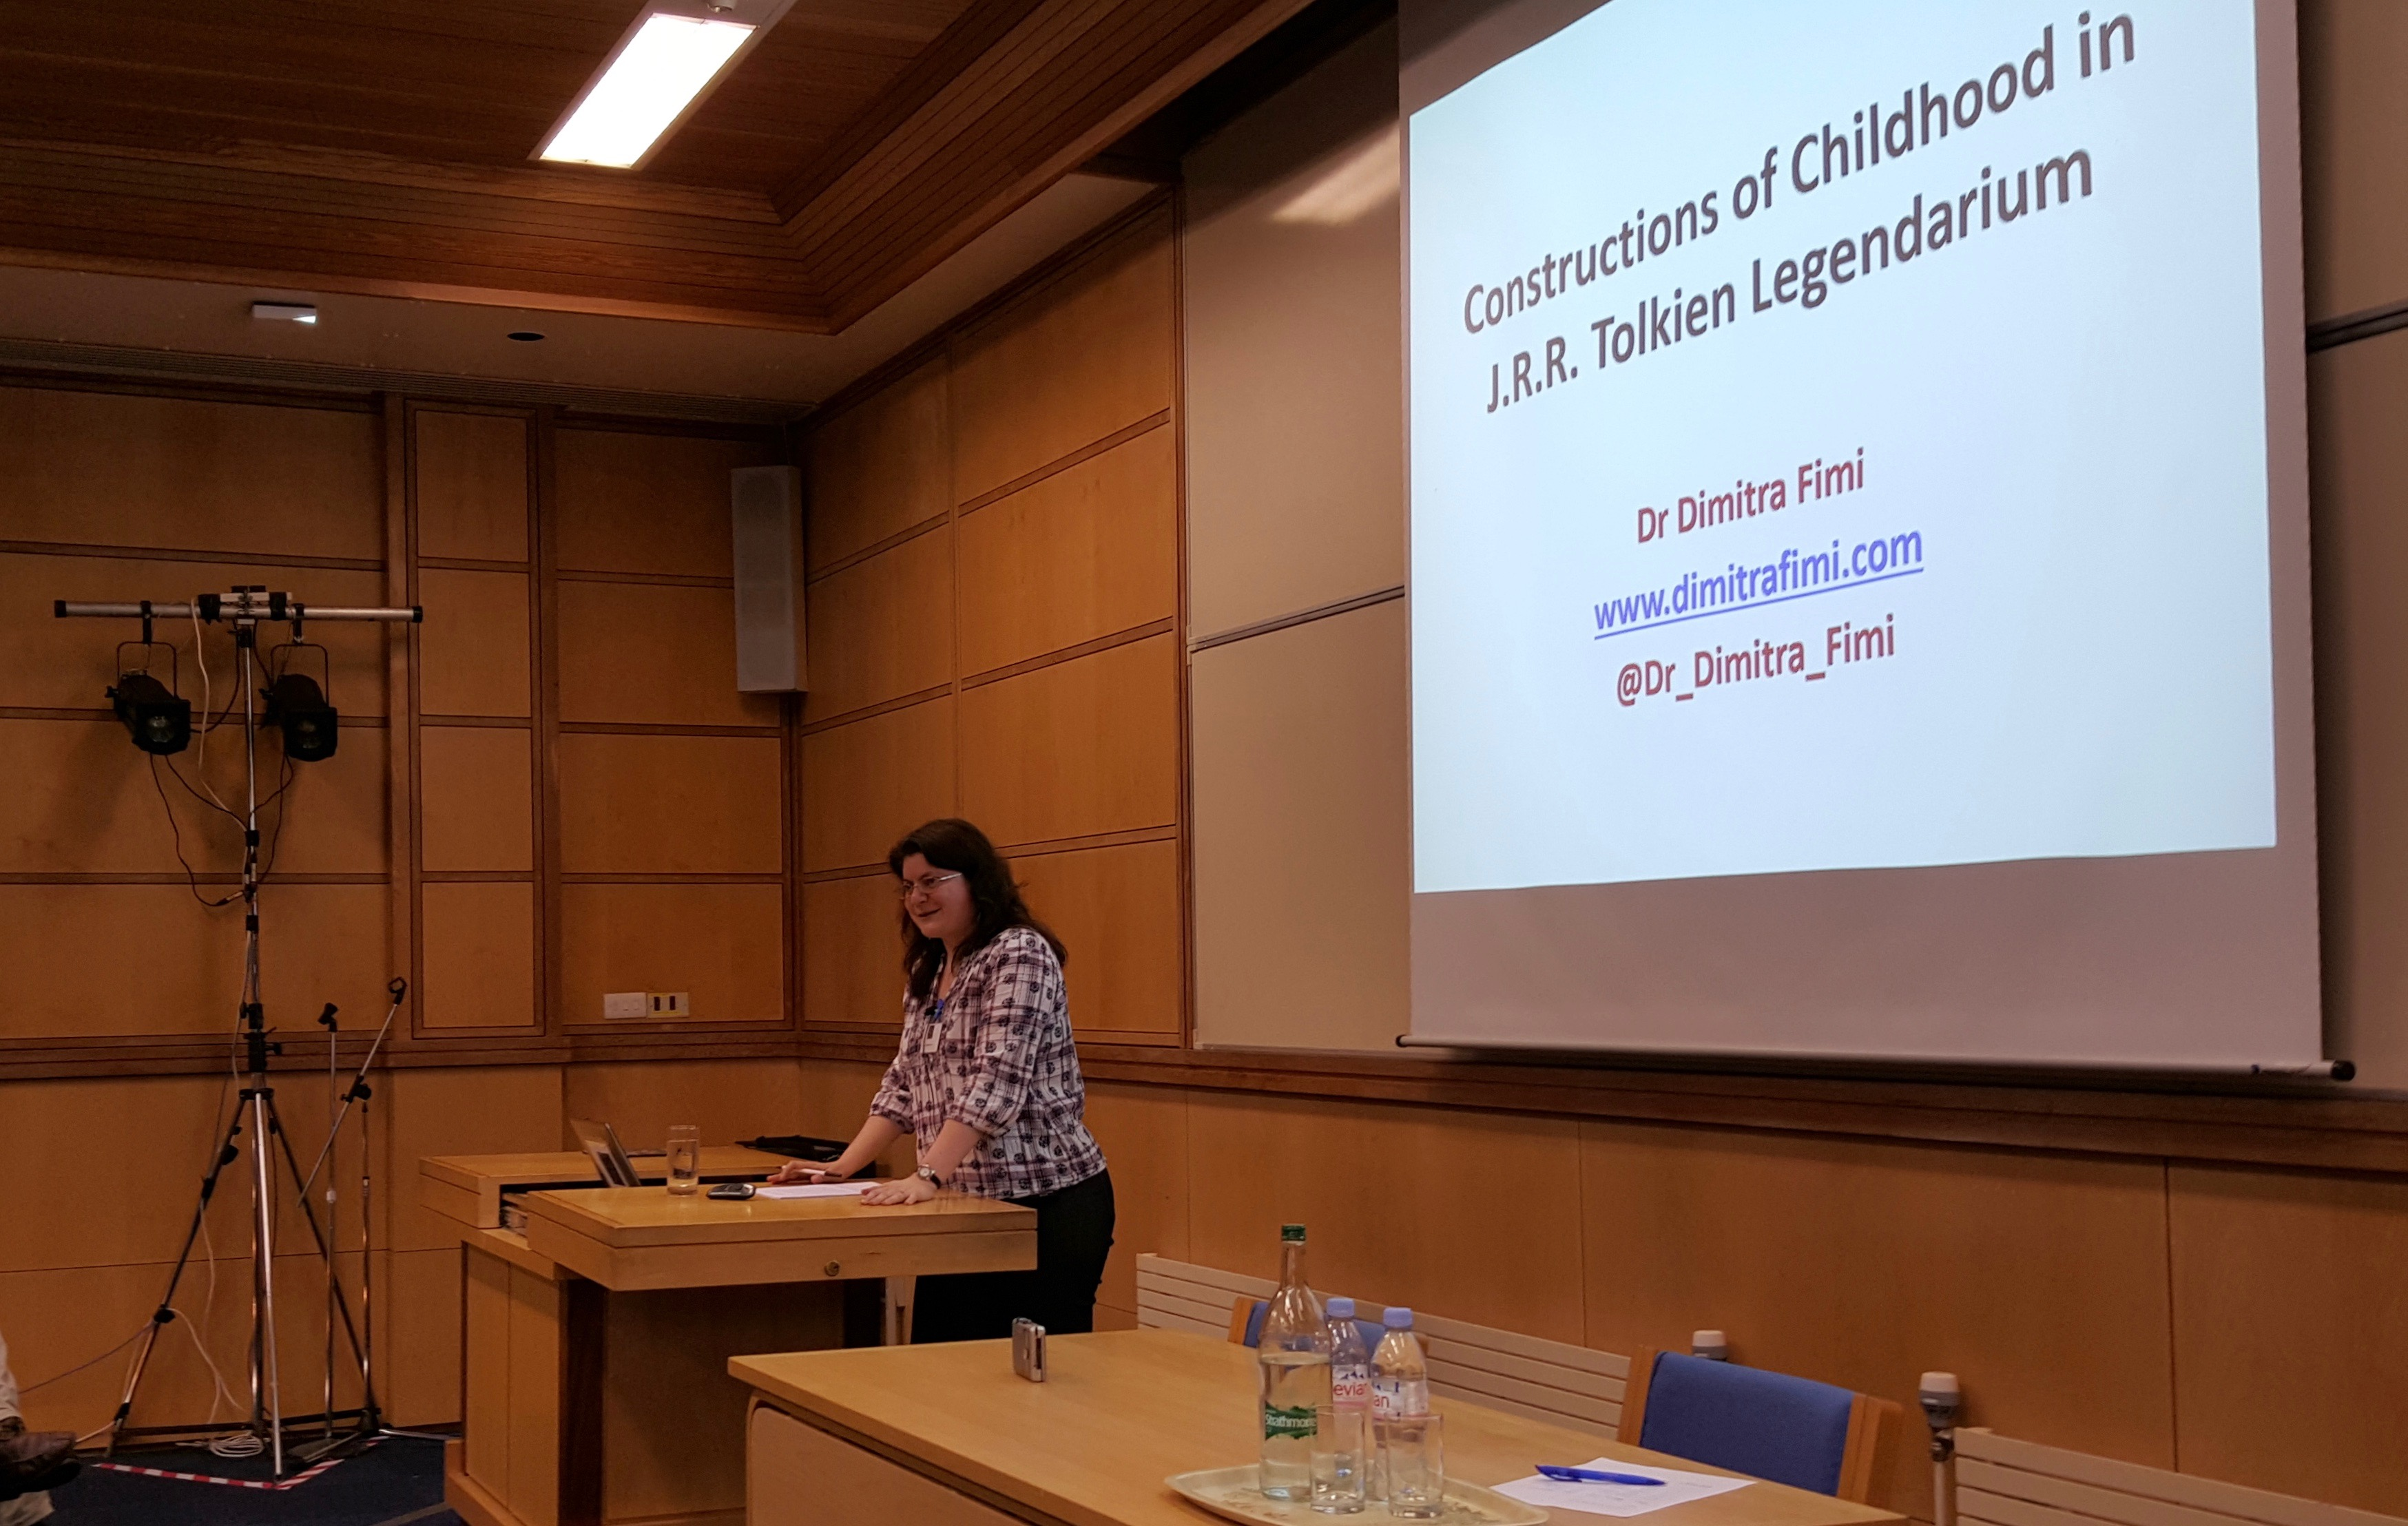 Dr Dimitra Fimi presenting a paper on Constructions of Childhood in J.R.R. Tolkien Legendarium